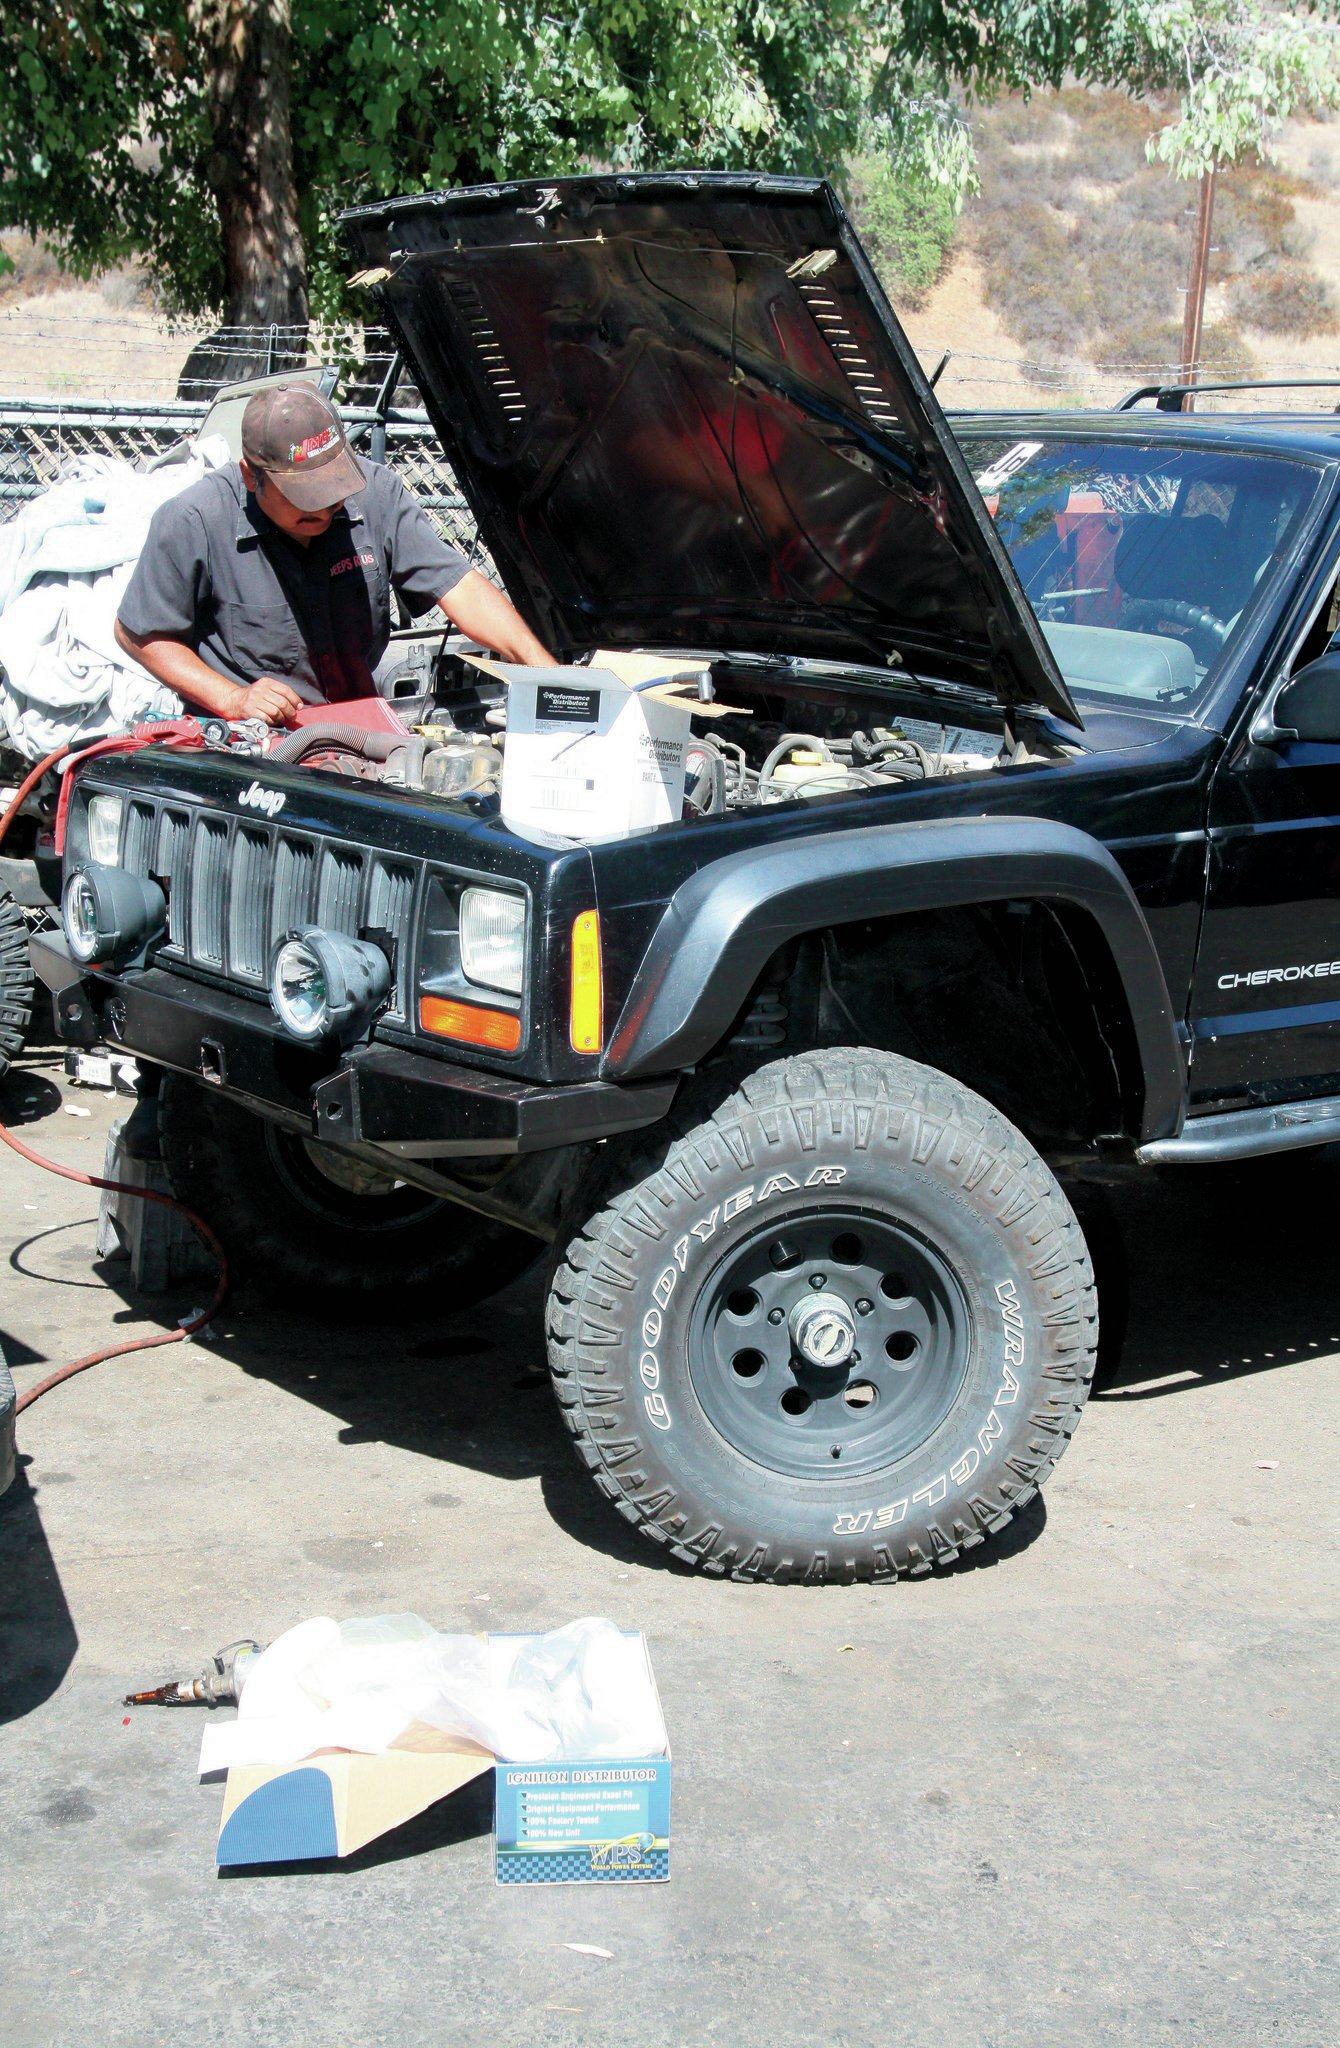 Once that was done, it was time to button the Jeep back up. A new distributor, new-to-us coil, and some performance ignition parts and it was running better than ever.